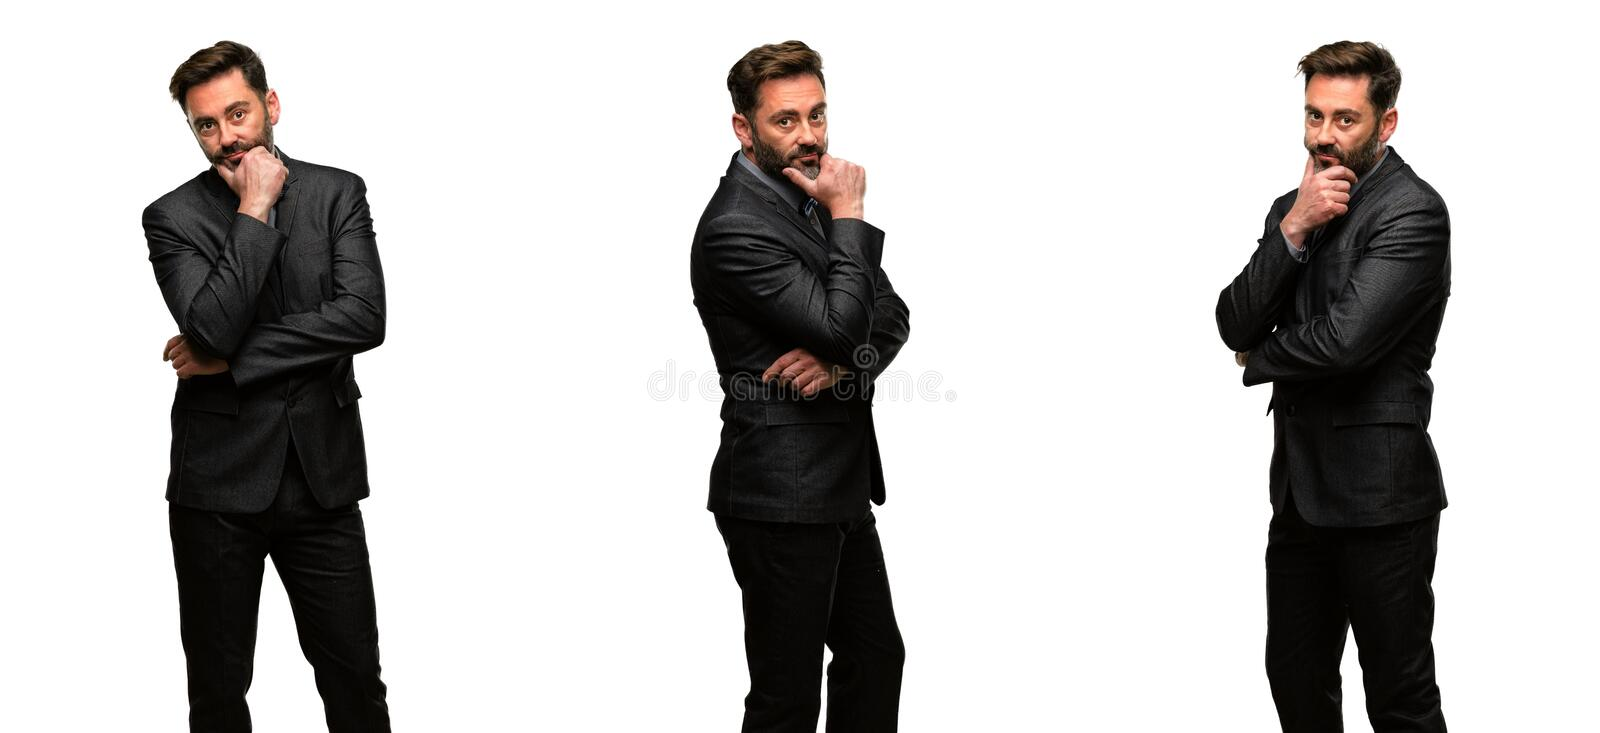 Middle age man wearing a suit royalty free stock photo